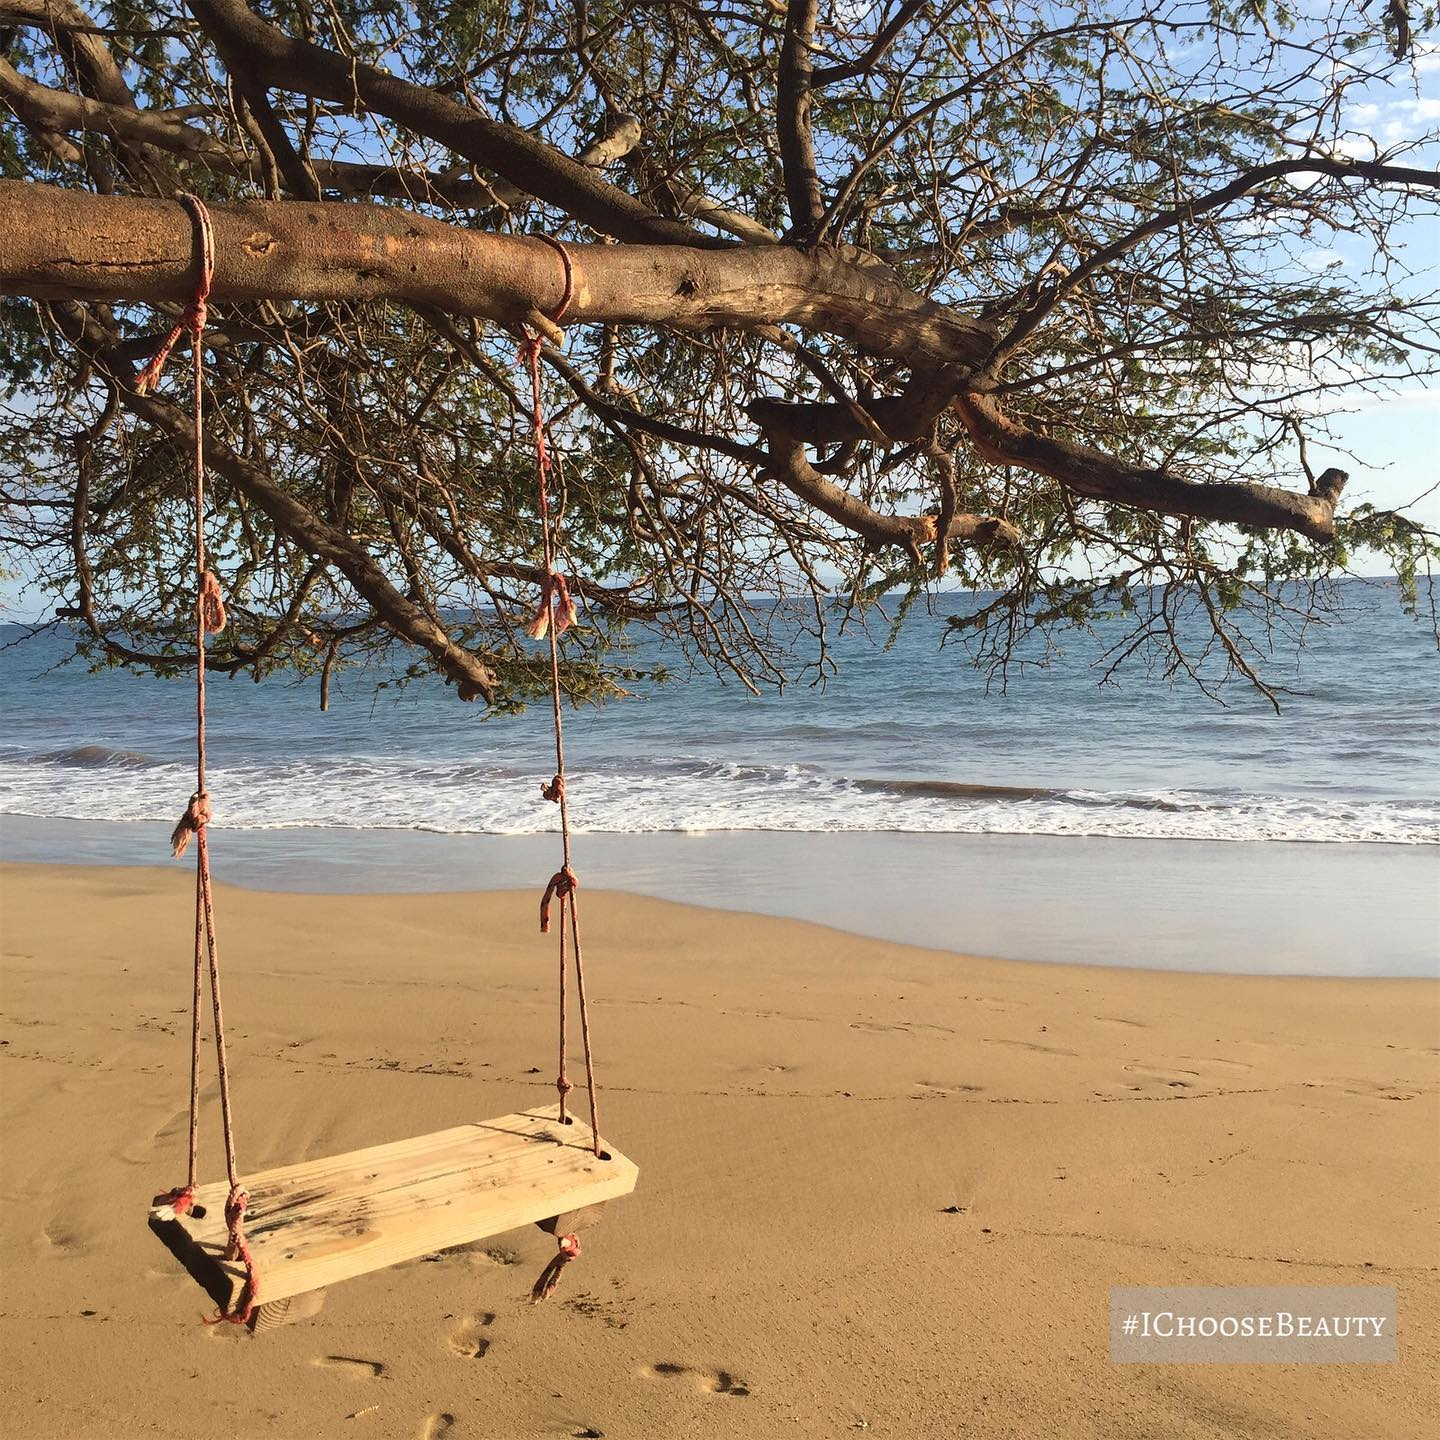 In love with this magically carefree swing. #ichoosebeauty Day 2743